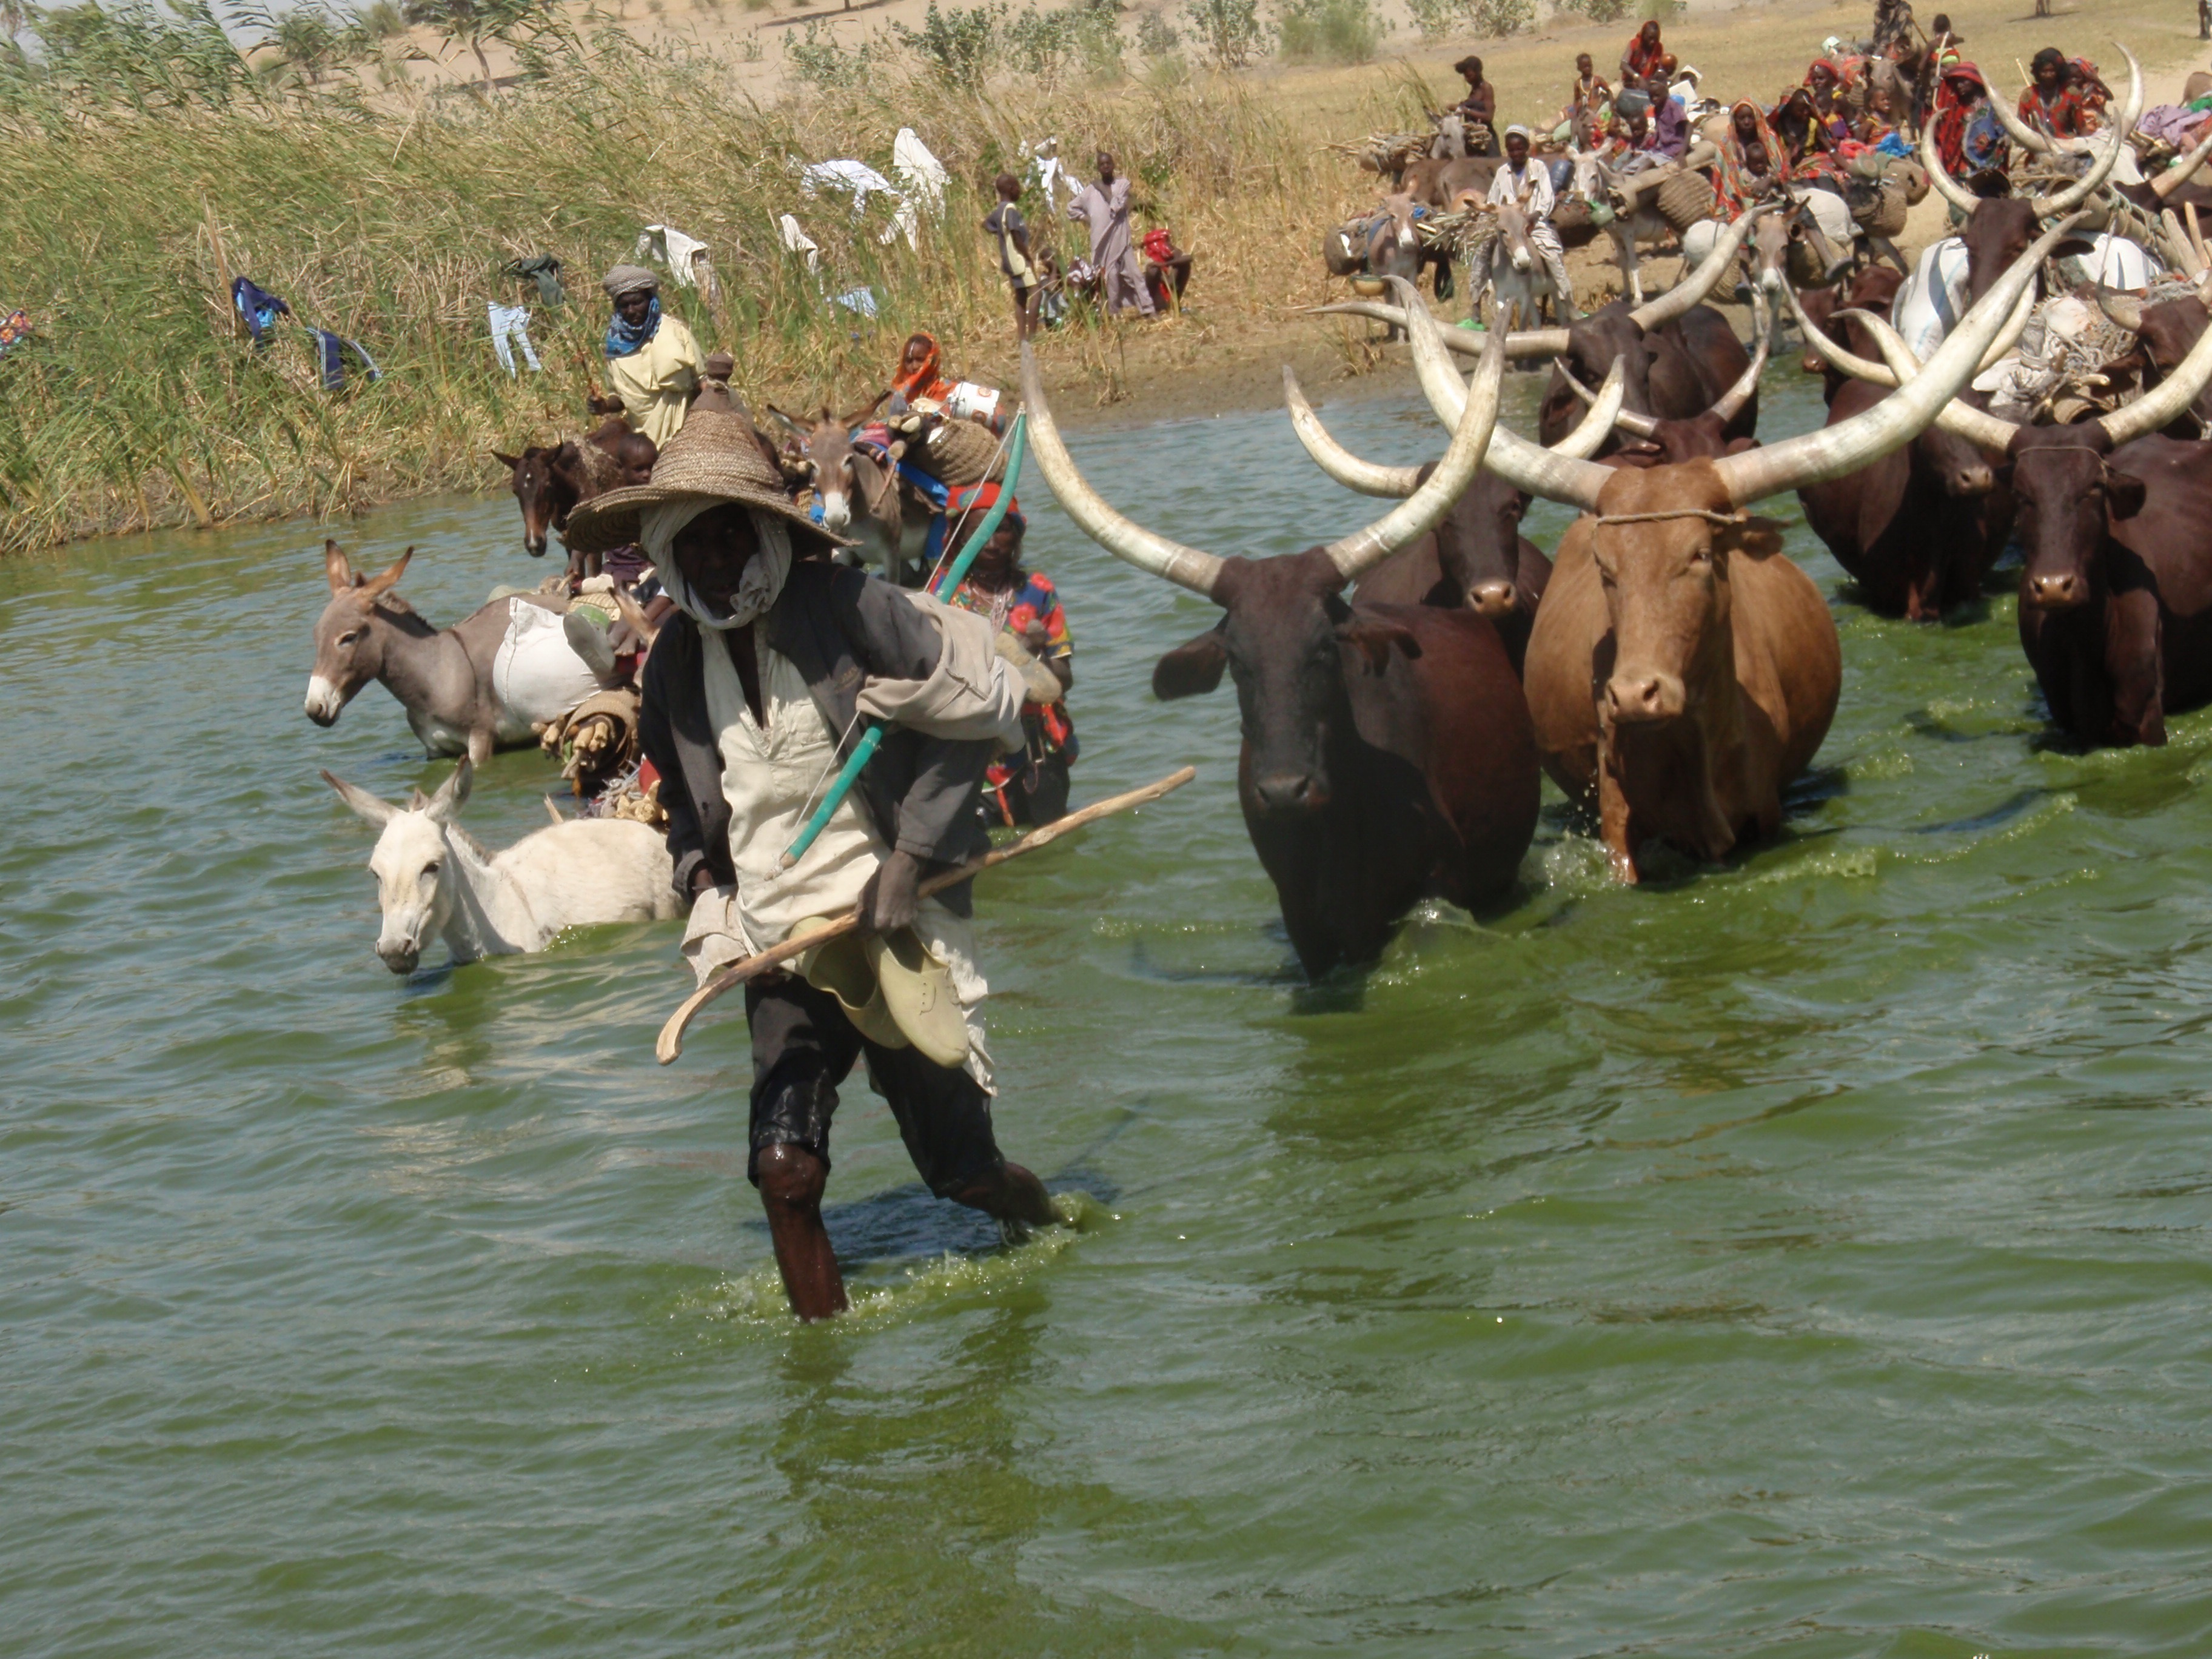 A black man in a gray outfit, holding a cane and wearing a broad-brimmed hat, is leading a herd of oxen crossing a stream. In the background are people following him, some in the water and some on the shore.